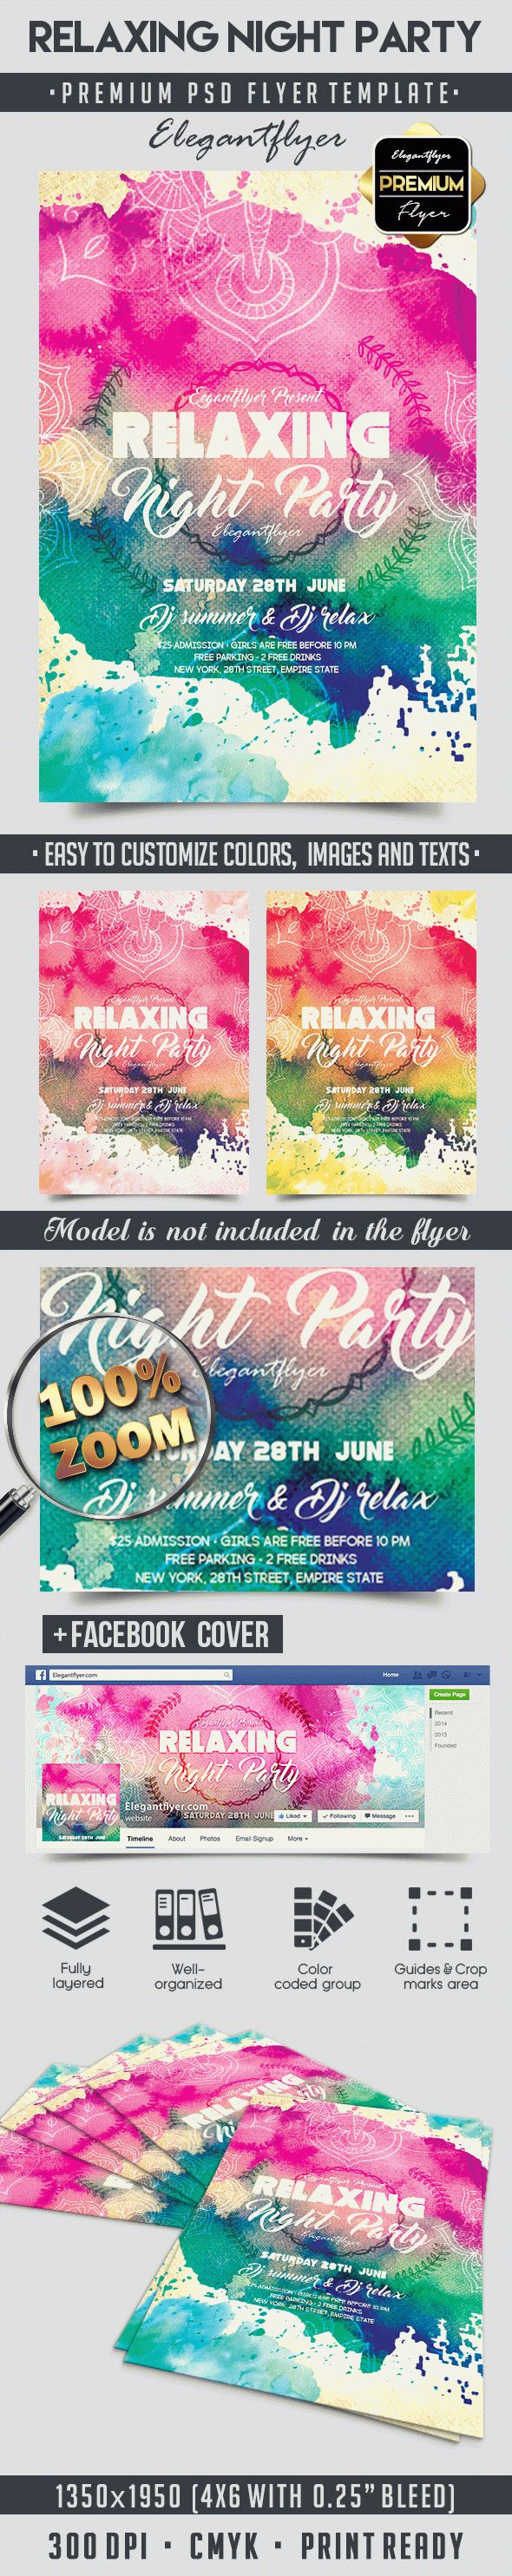 Relaxing Night Party – Flyer PSD Template + Facebook Cover